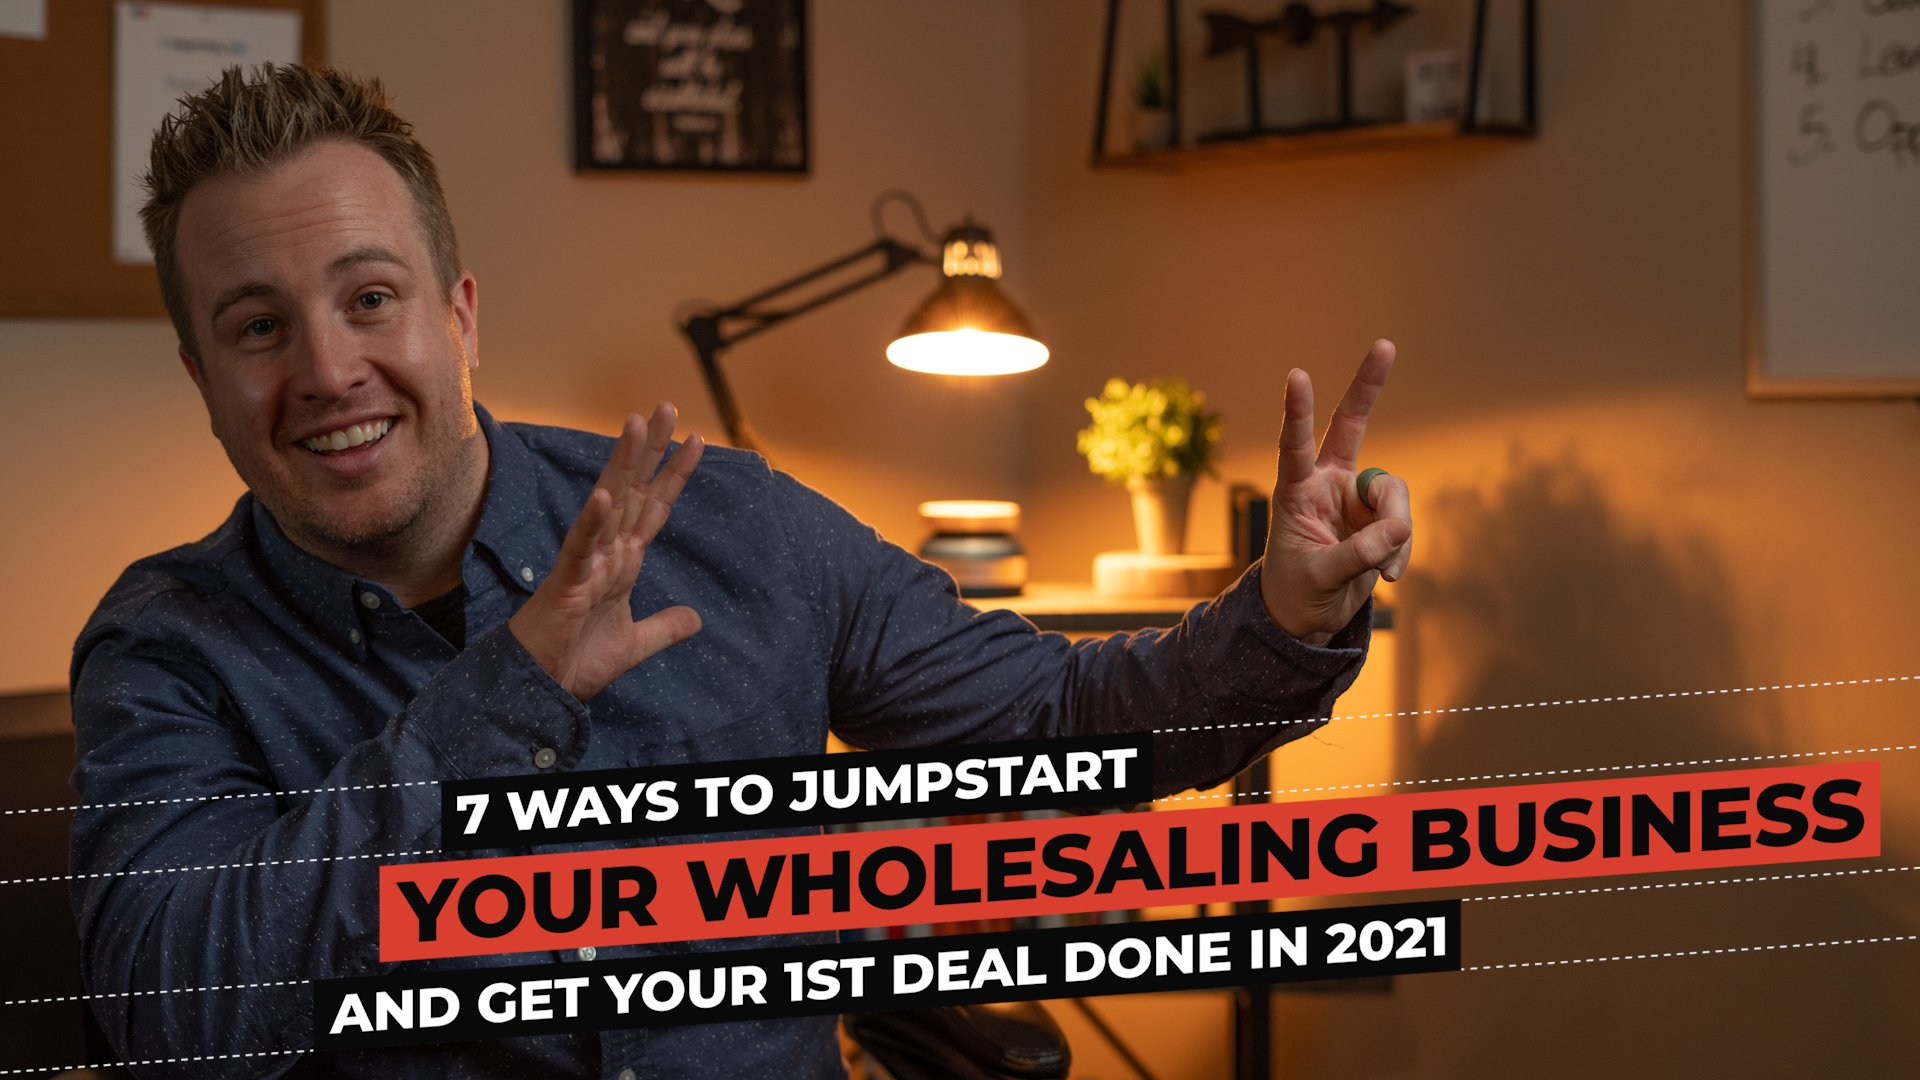 7 ways to jumpstart your wholesaling real estate business in 2021